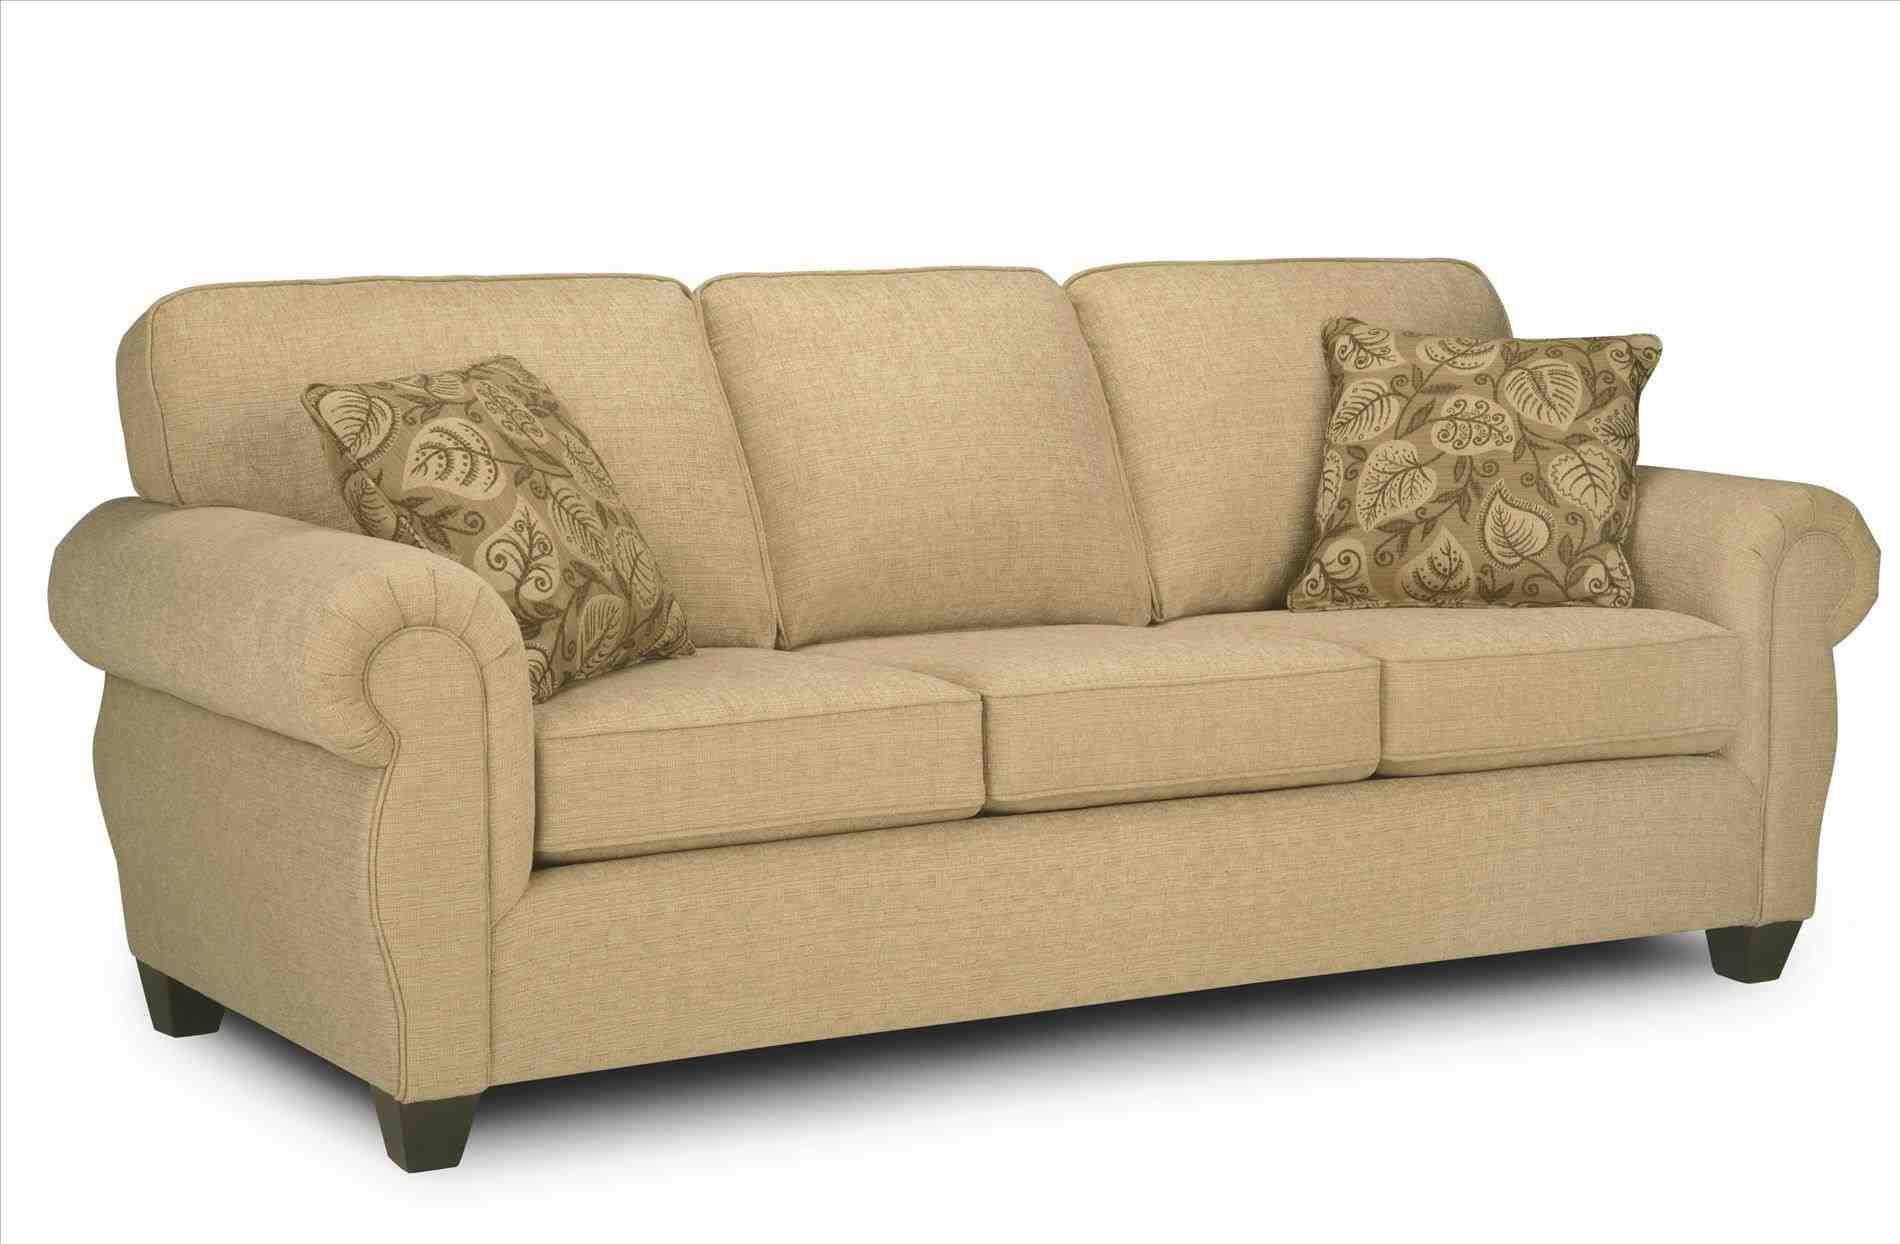 Toronto Sofa Sectional Sofa Bed Toronto Modern Sofa Beds Sleeper Sofas